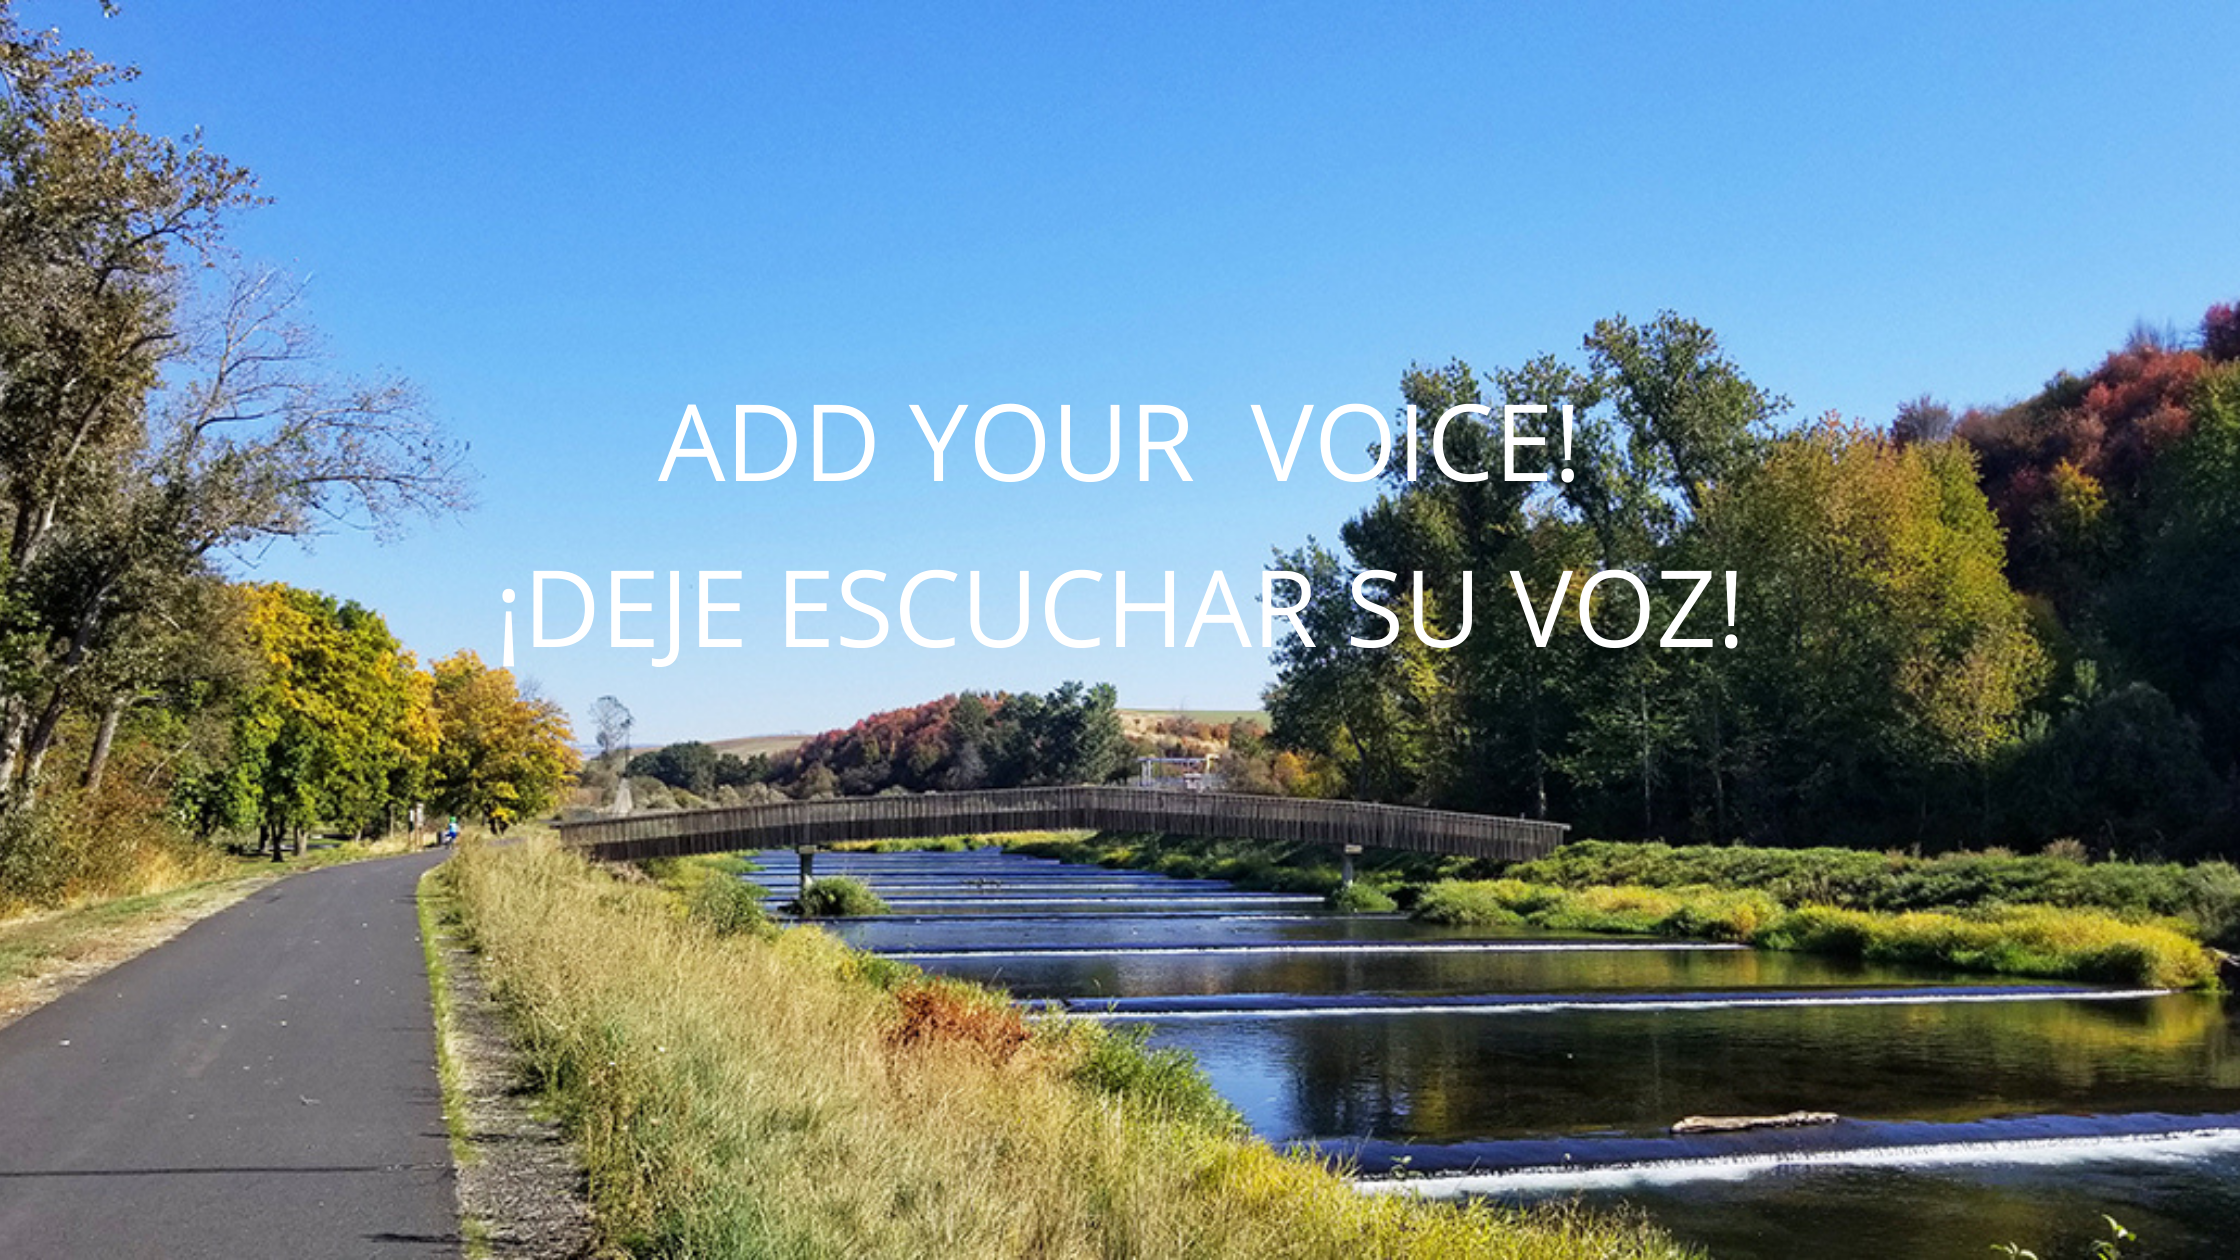 ADD YOUR VOICE!